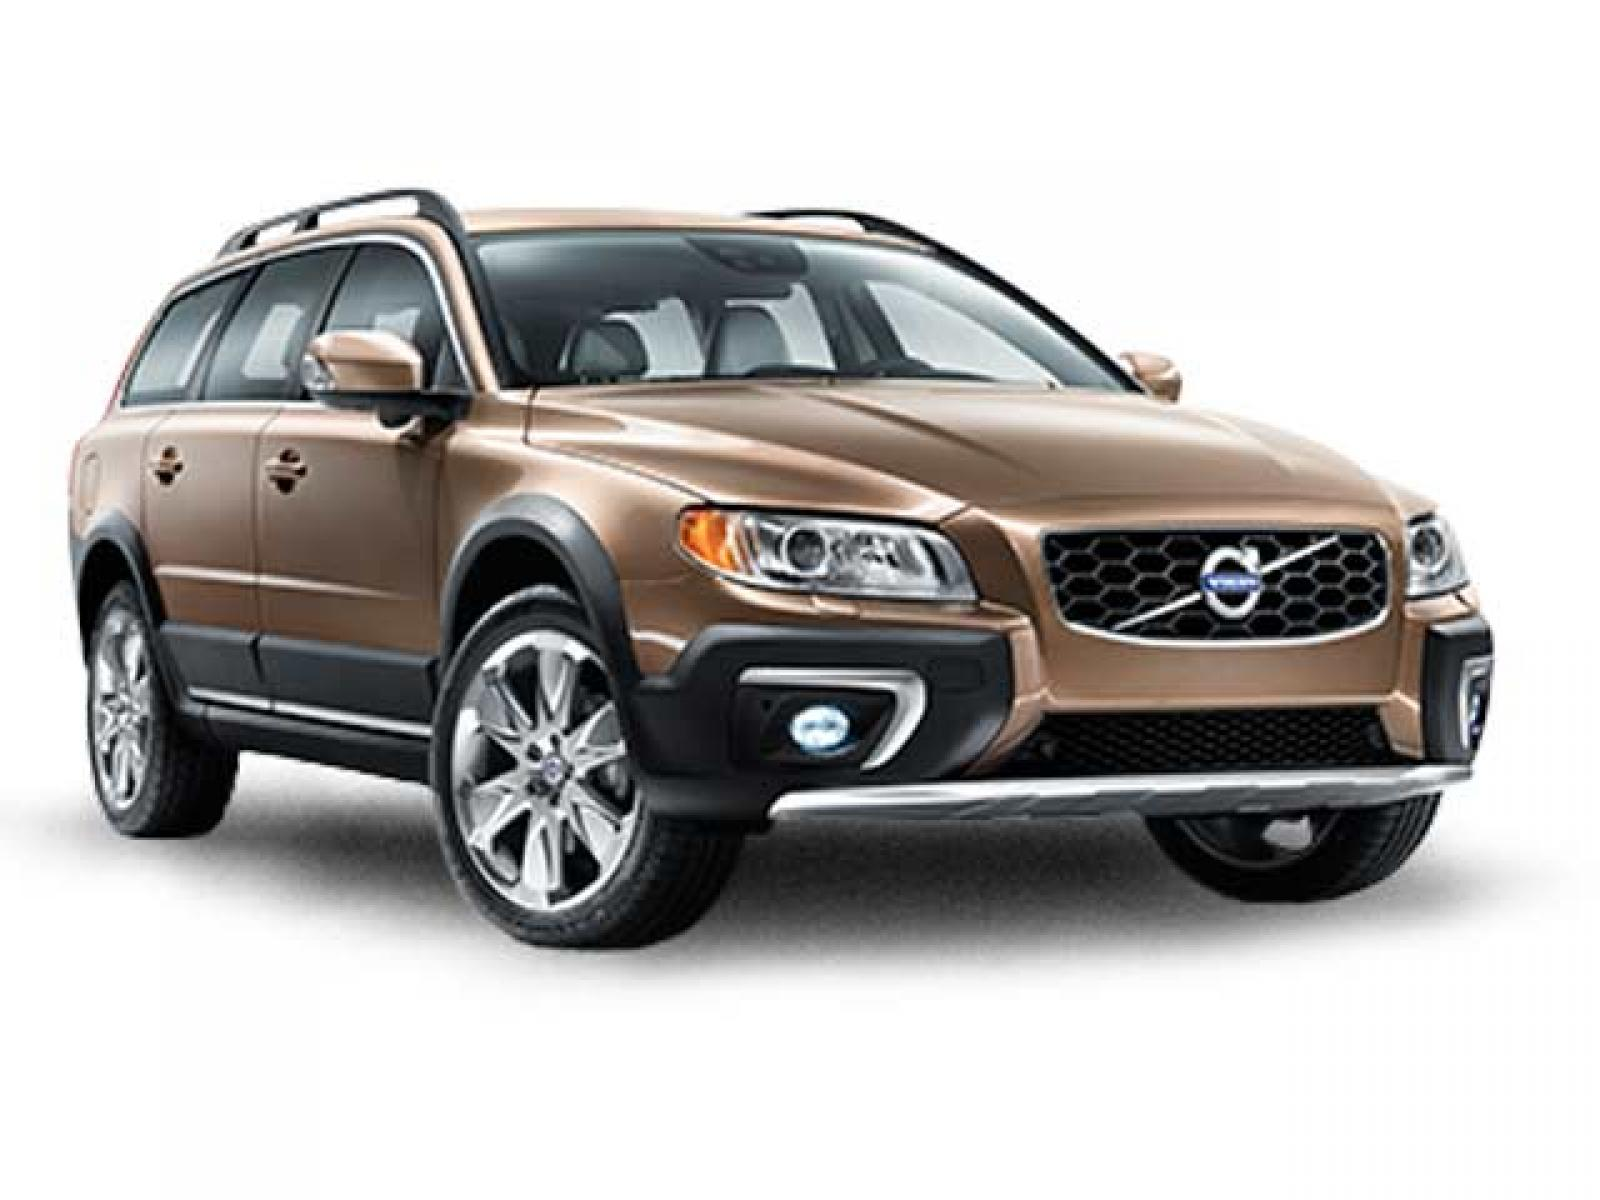 2014 2015 Volvo Xc60 Gps as well 2015 Volvo Xc60 2015 Volvo Xc70 Redesign furthermore  on 2015 volvo xc60 t5 luxury review video 1215